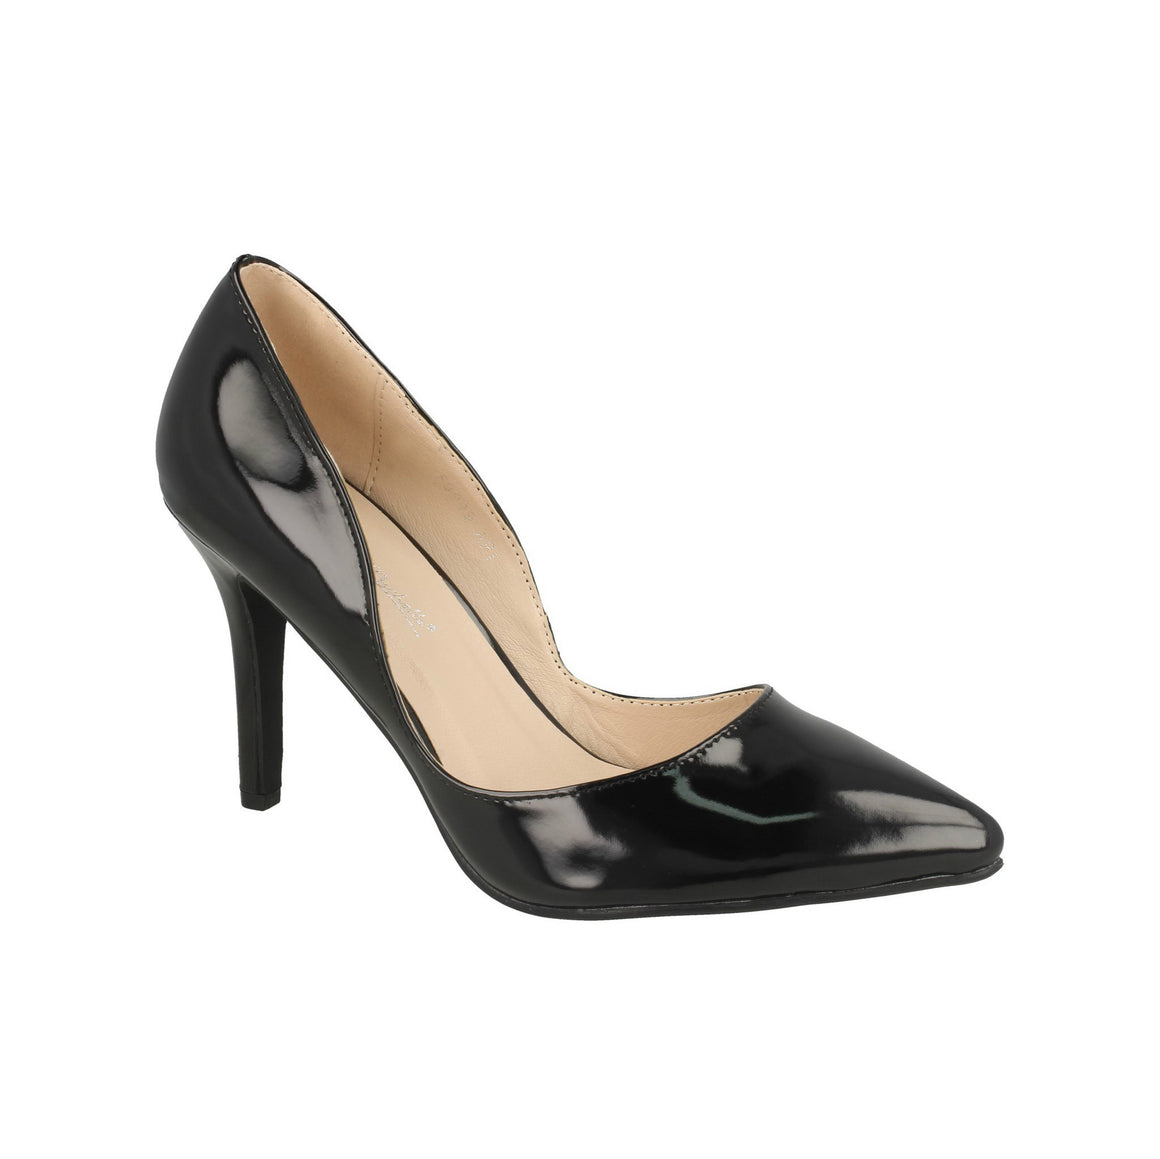 Black Patent Stiletto Heels